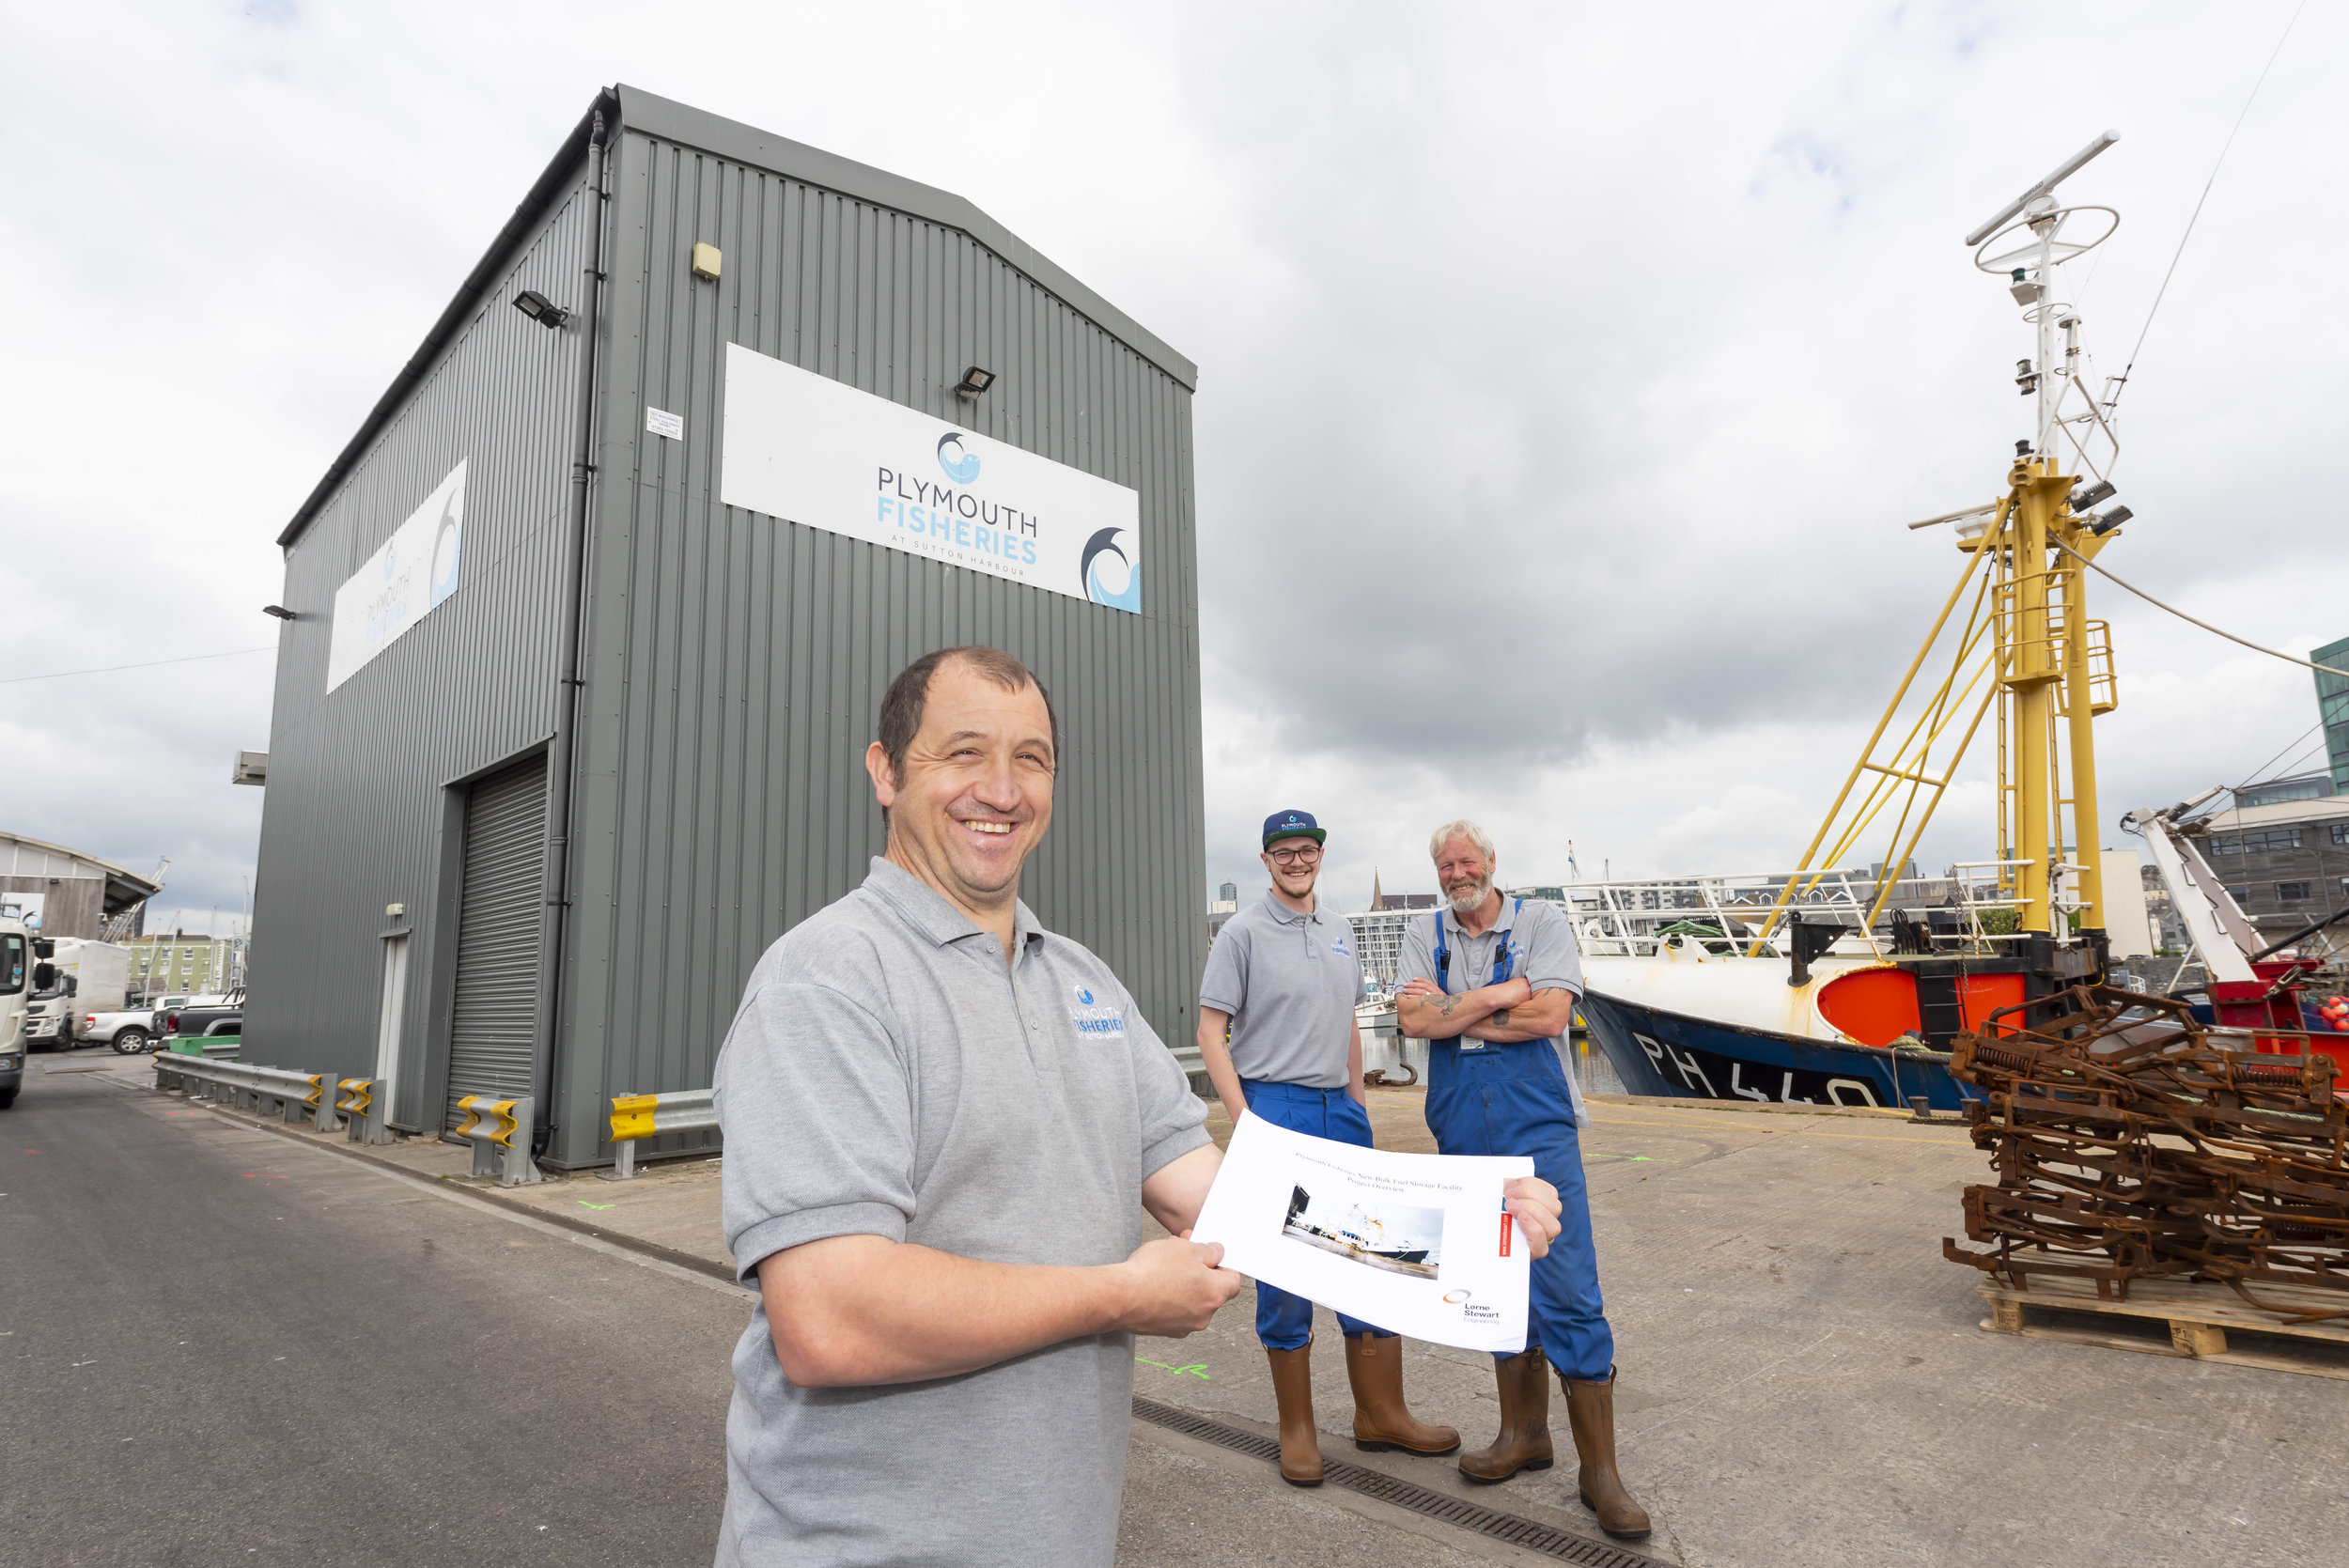 Nick Eggar, Manager of Plymouth Fisheries (front) with (L-R) Lewis Mcarther, Fisheries Assistant, and Tony Shepherd, Fisheries Assistant.